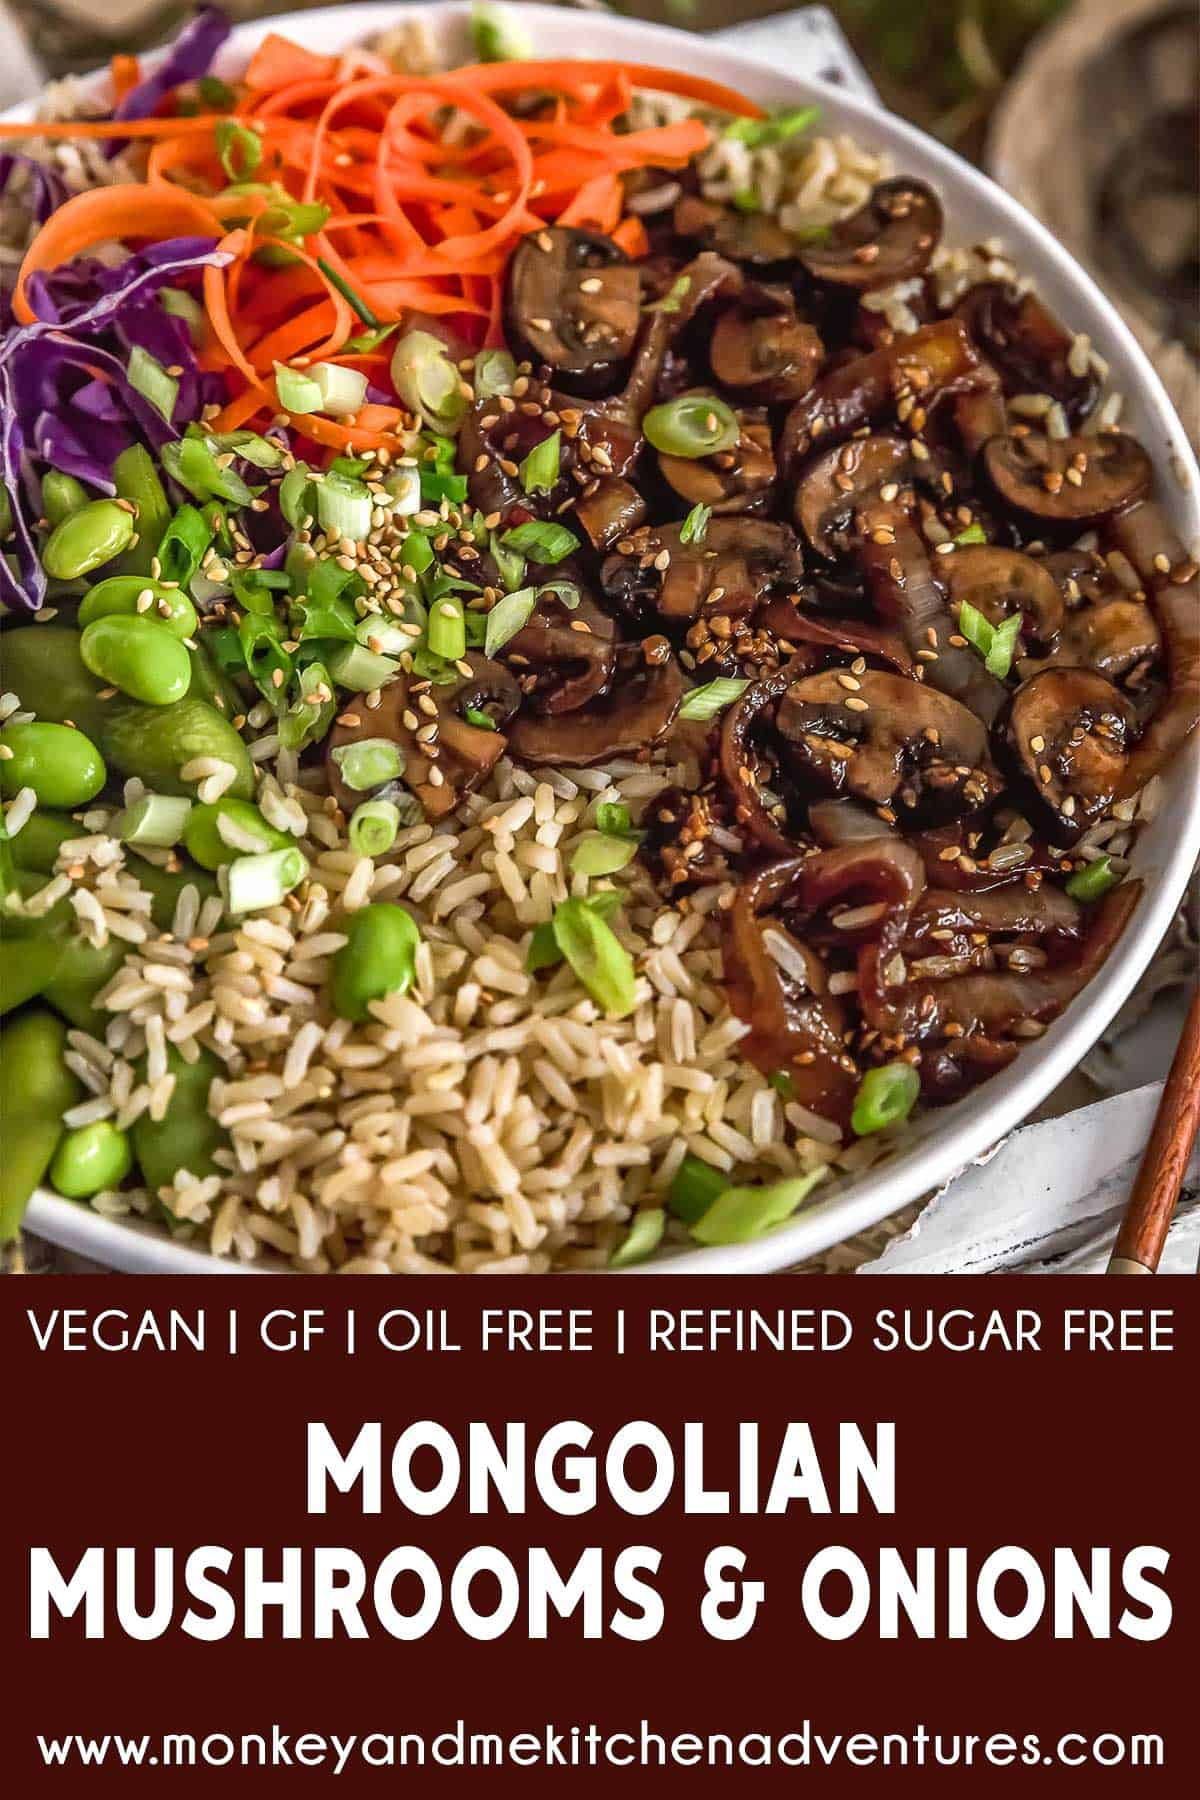 Mongolian Mushrooms and Onions with text description